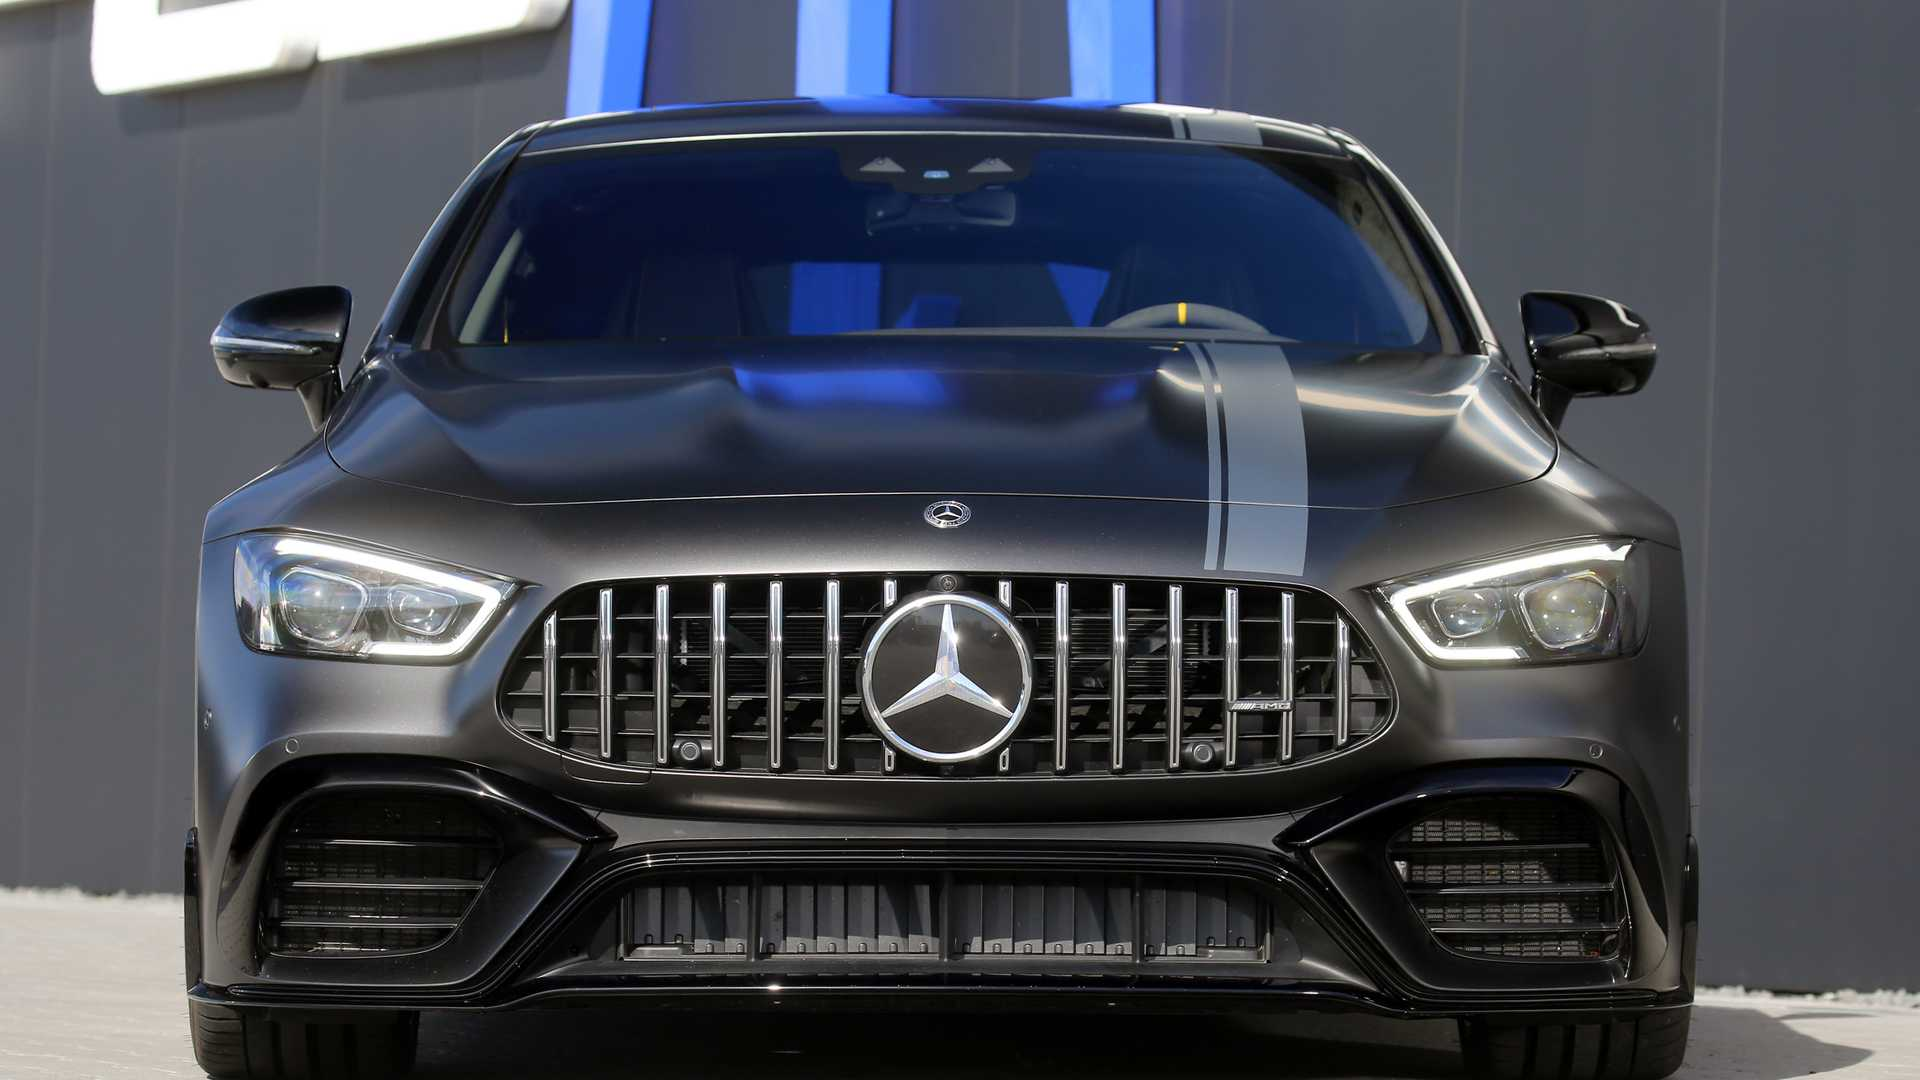 ad1c7620-mercedes-amg-gt-63-s-tuning-posaidon-4